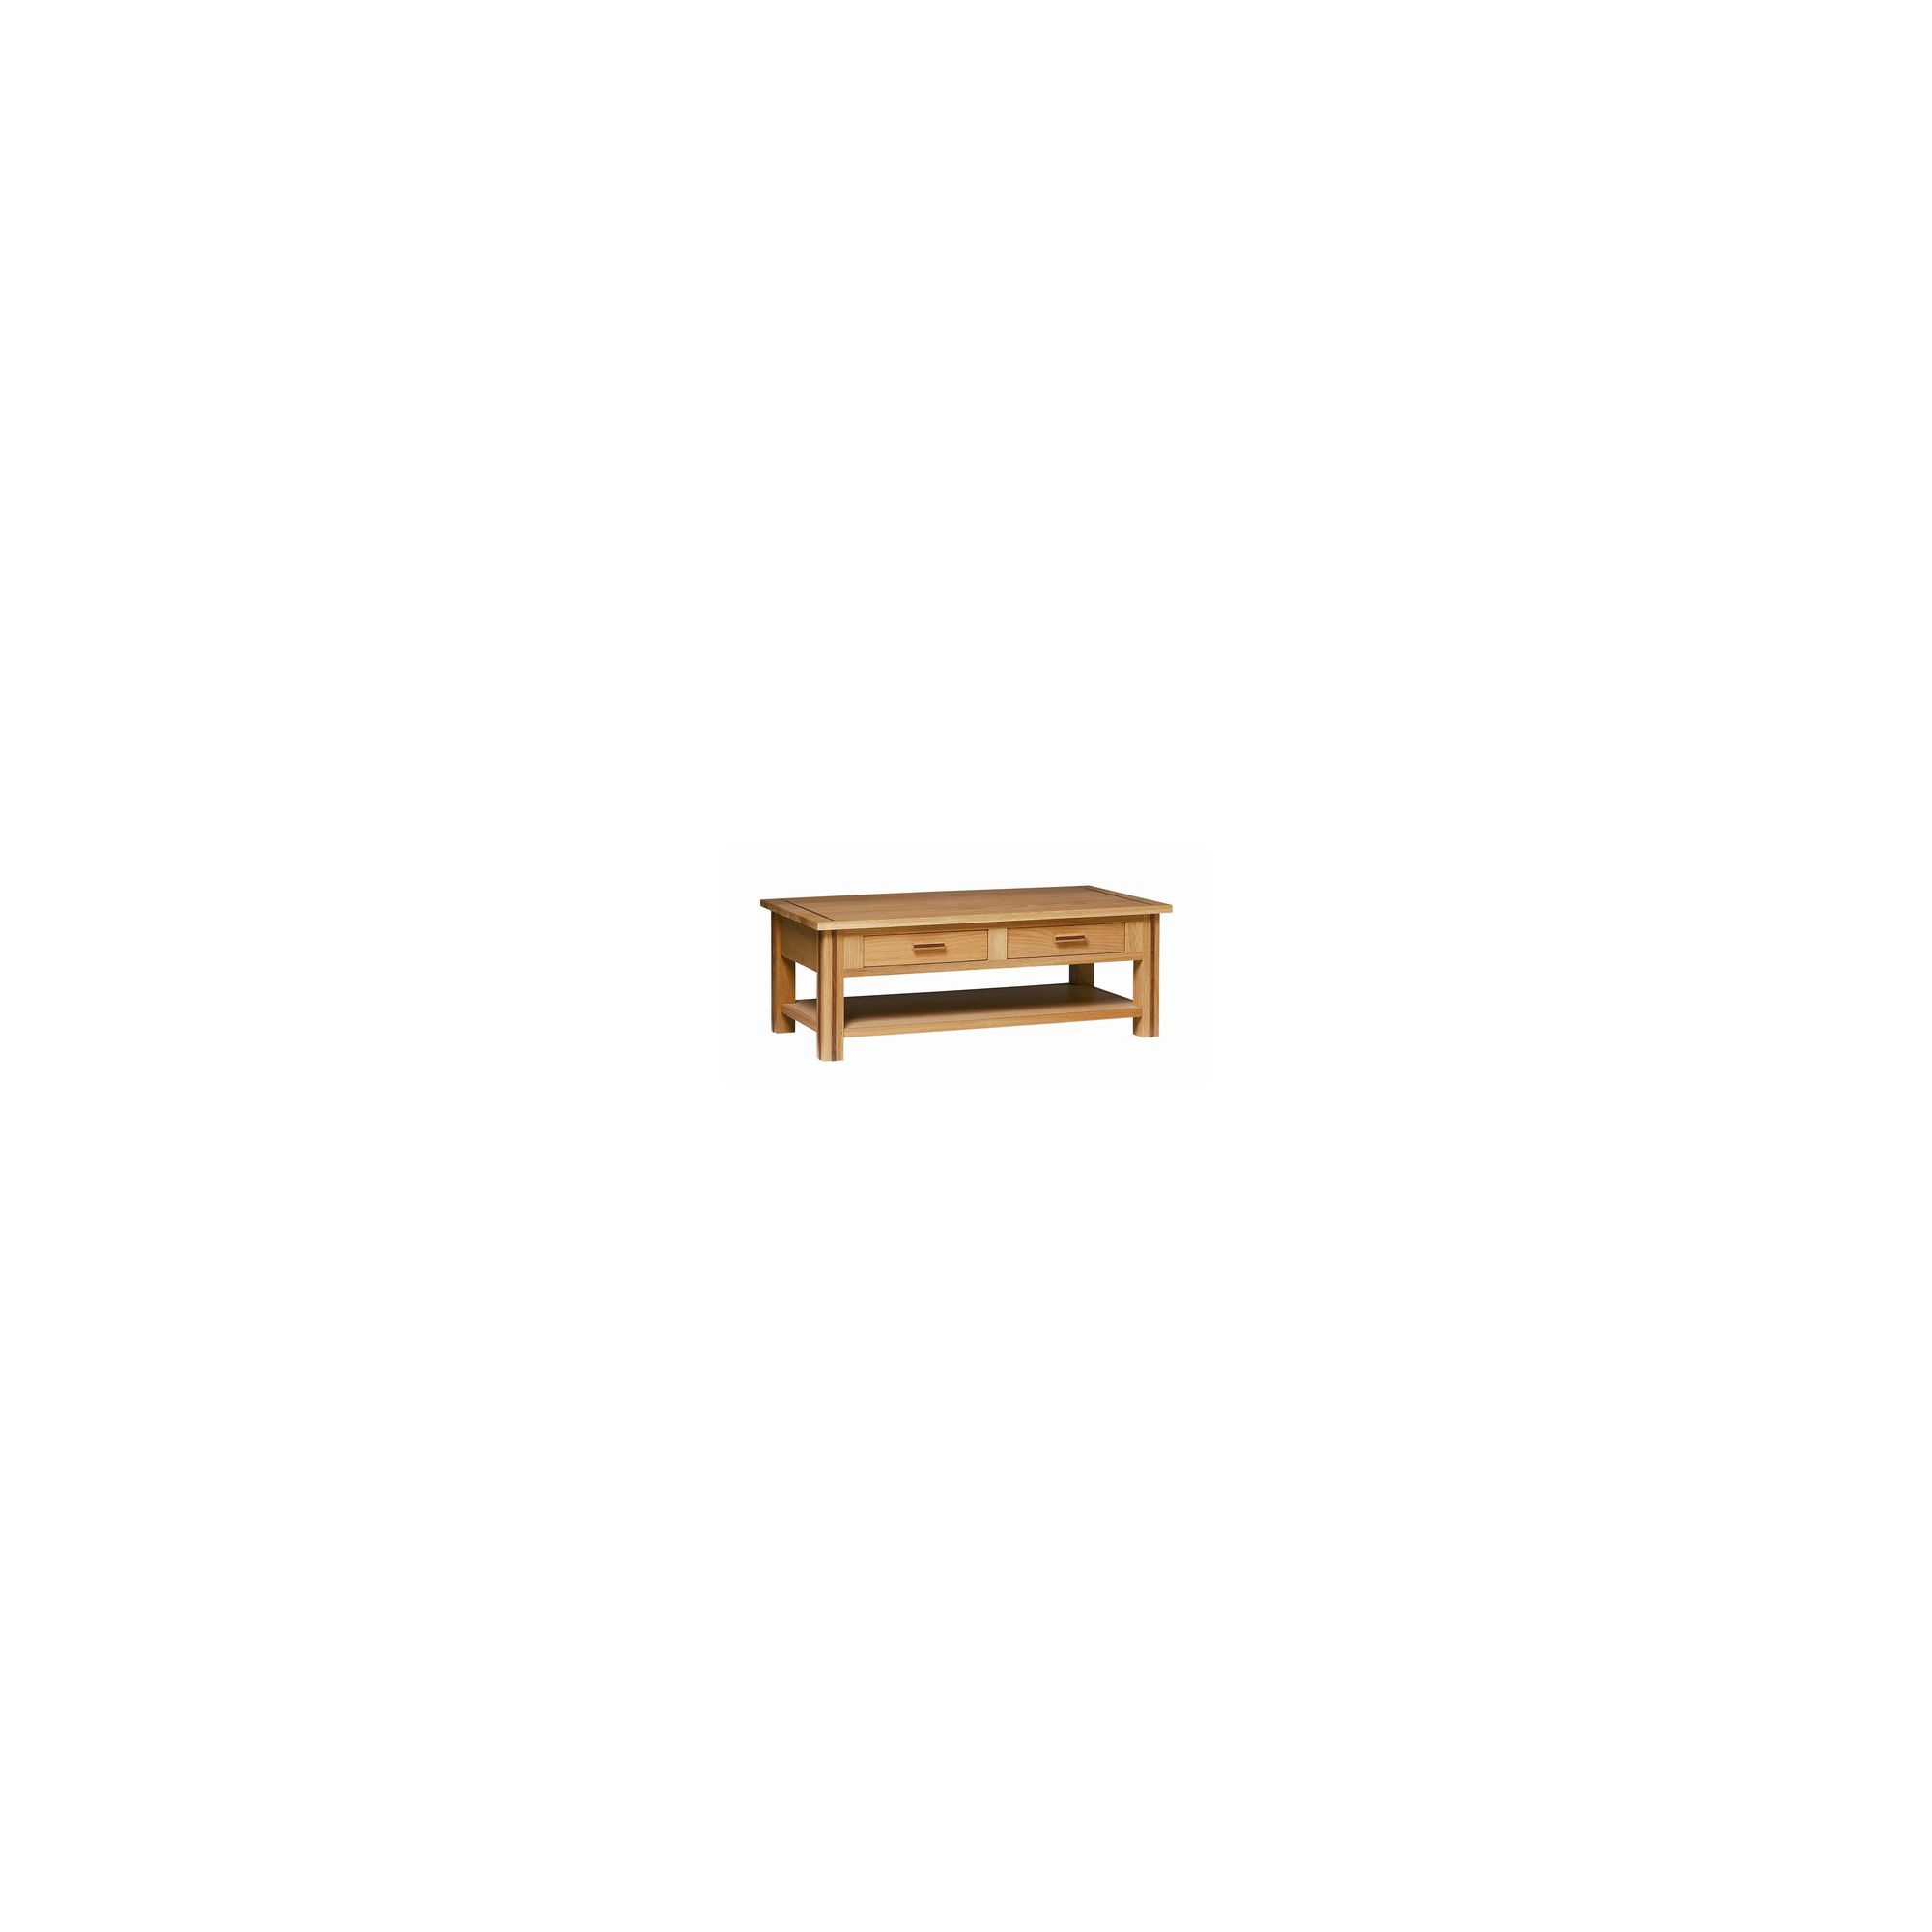 Wilkinson Furniture York Two Drawer Coffee Table at Tesco Direct